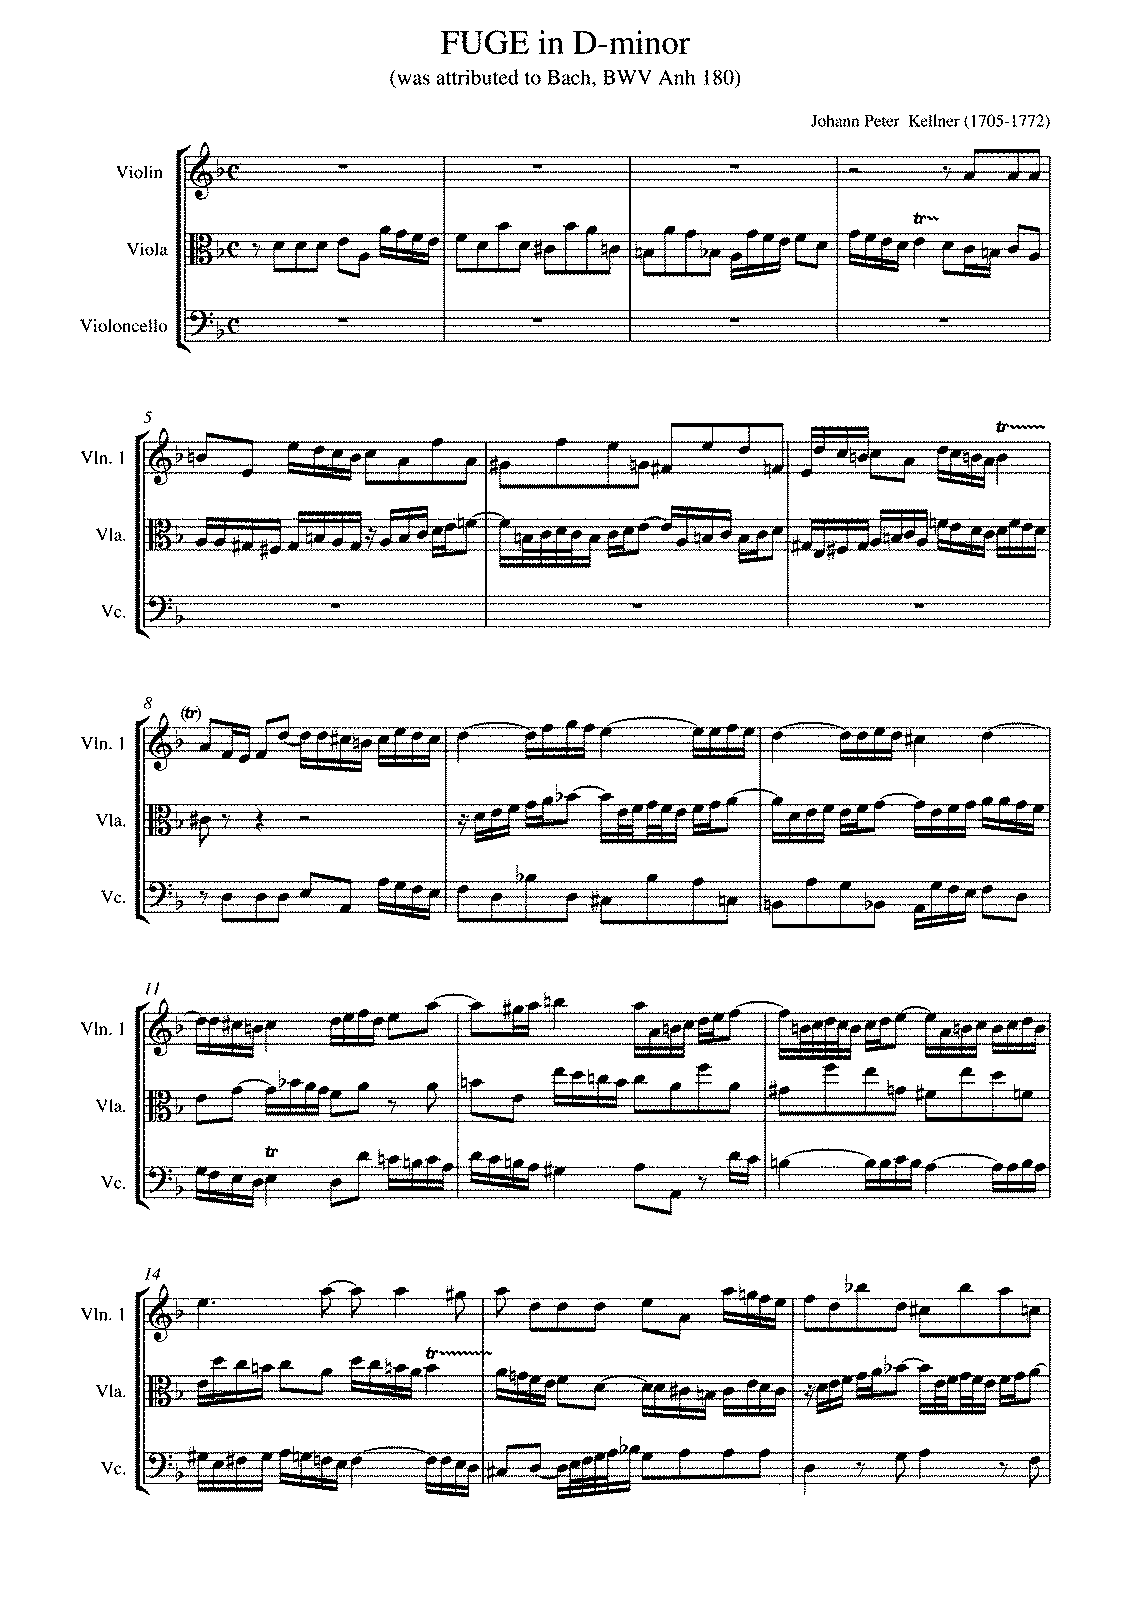 WIMA.60d2-Kellner-Fugue-in-d.pdf